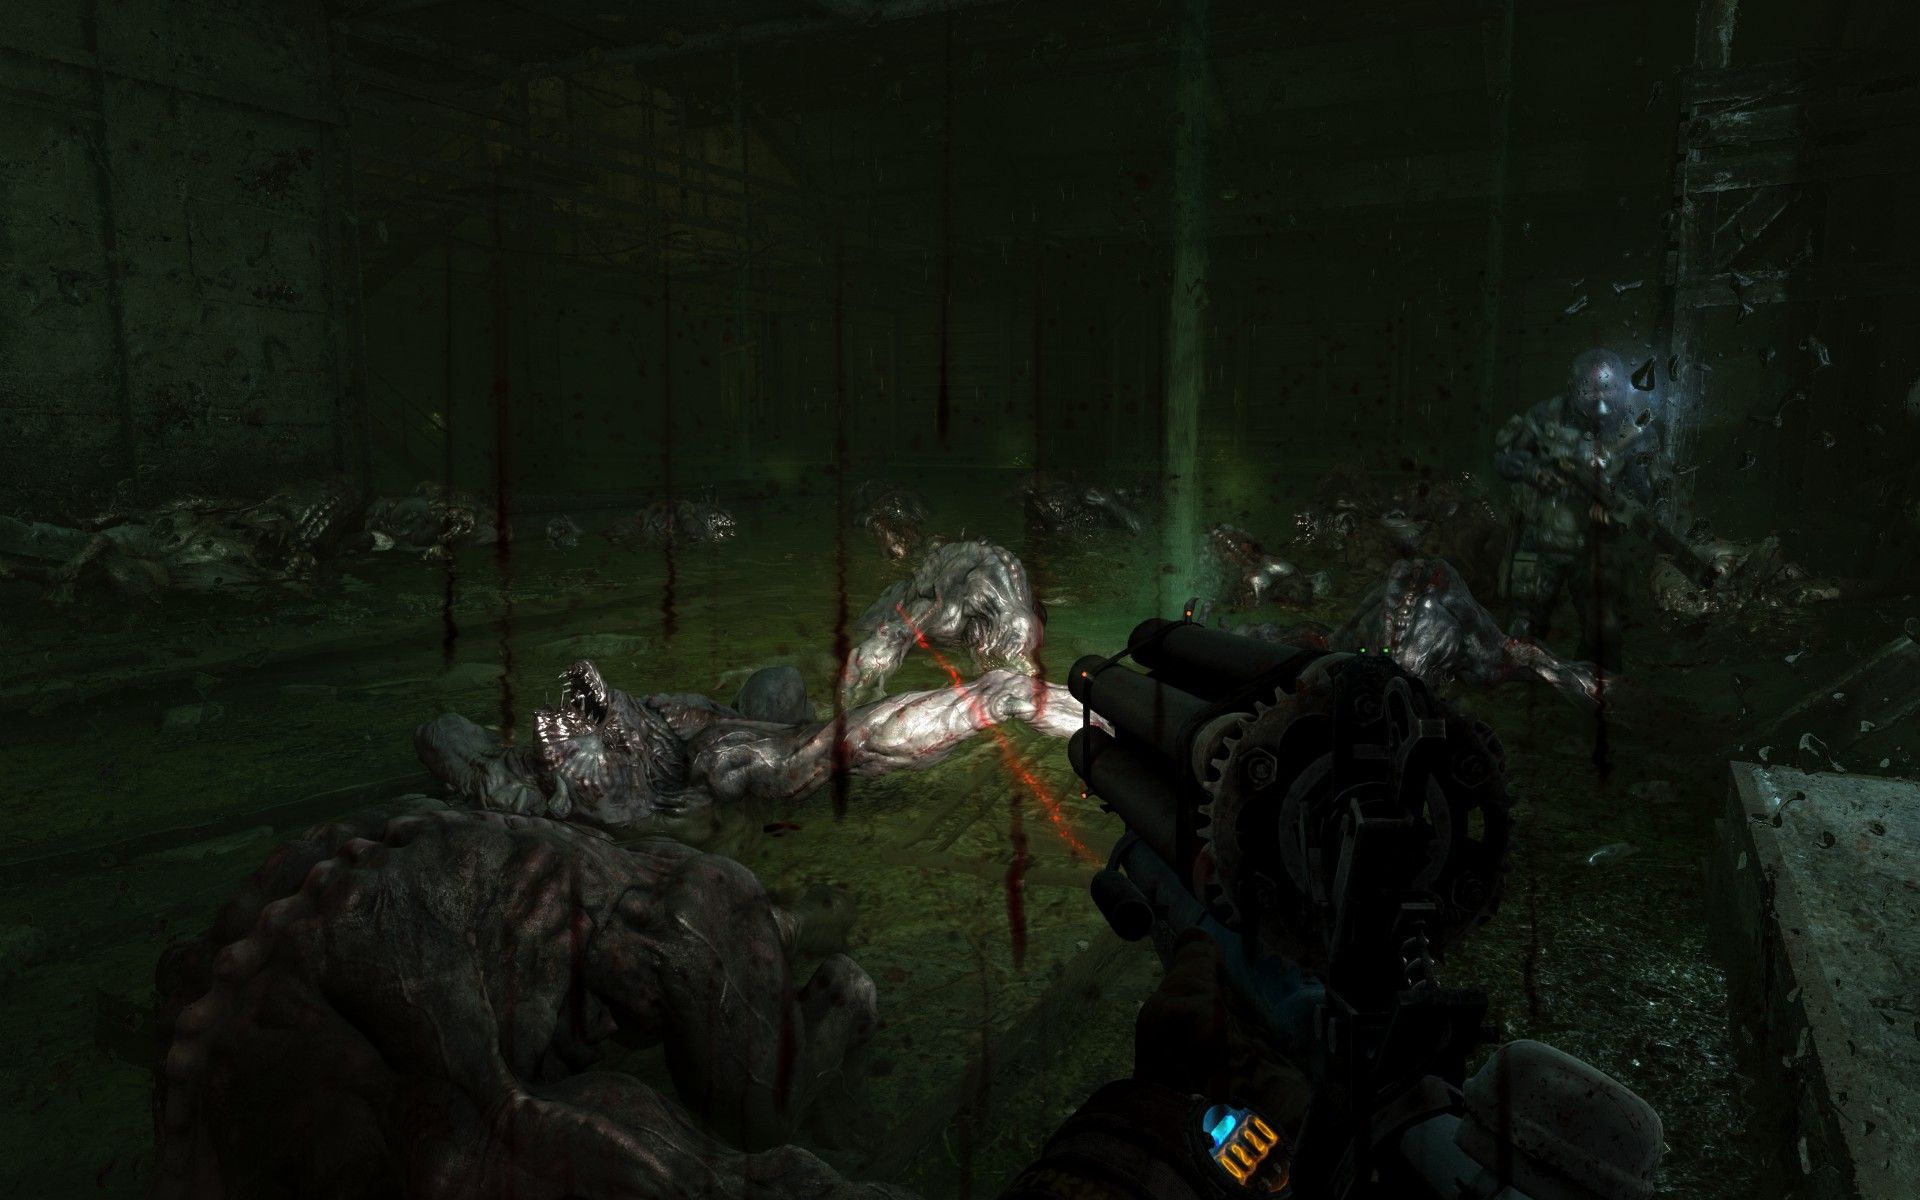 Metro 2033 - is it Stalker: Shadows of the Subway or Hellgate